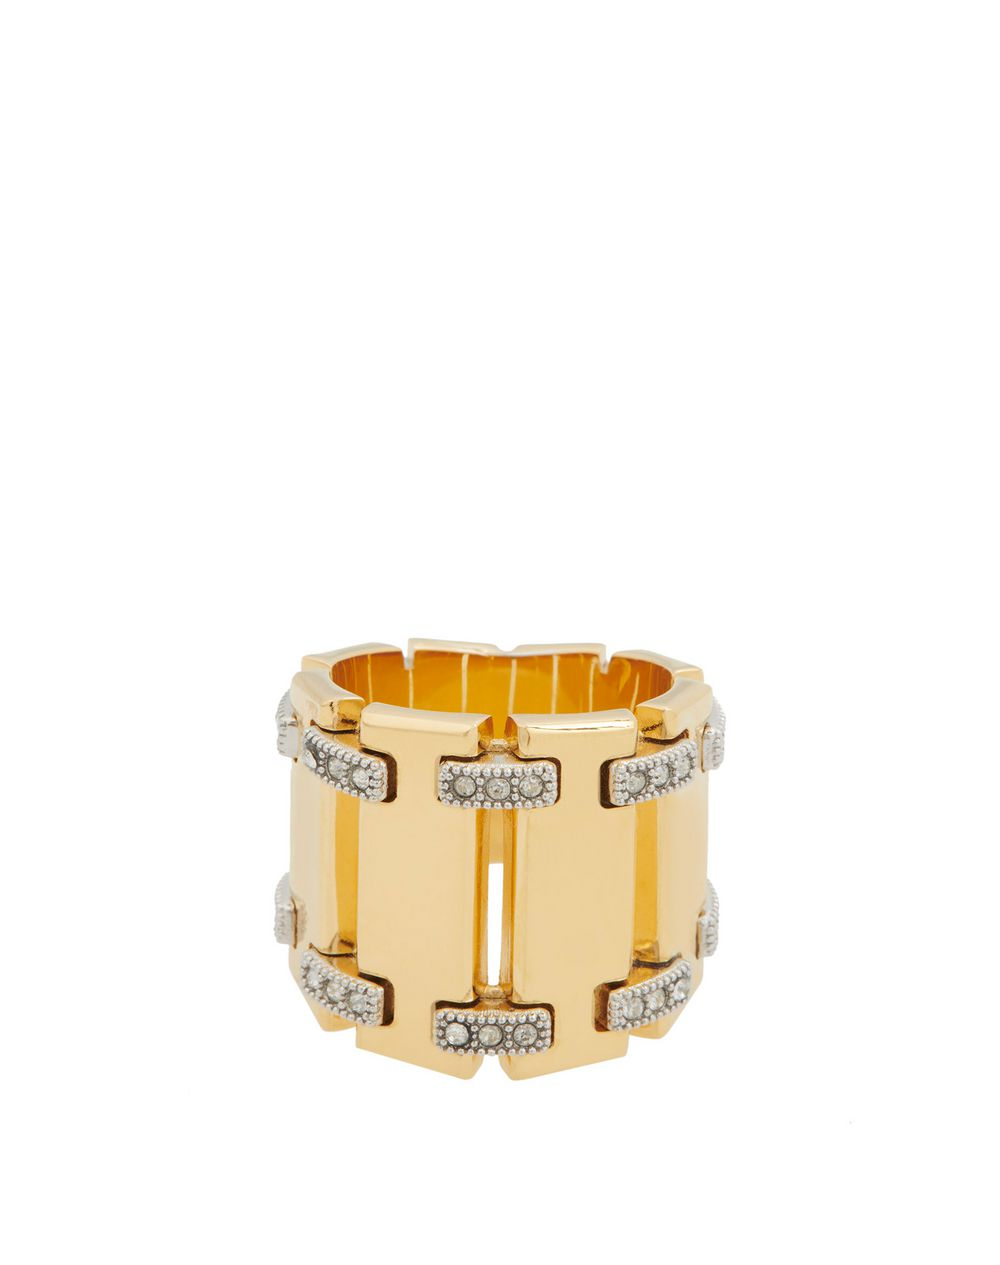 GOURMETTE RING WITH STRASS - Lanvin